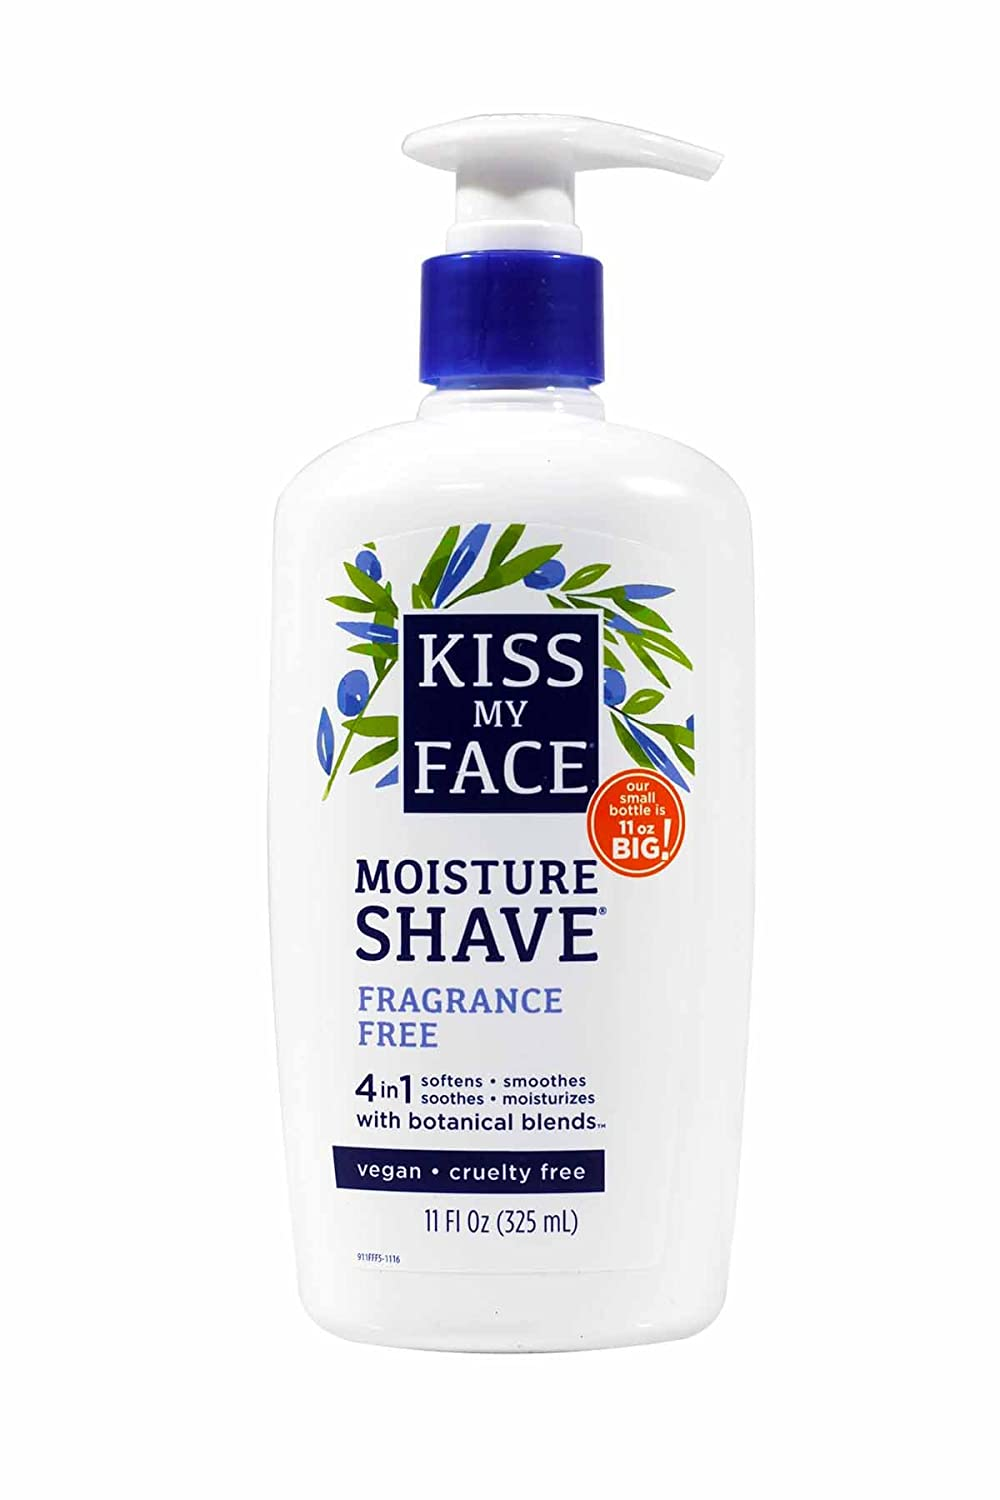 Kiss My Face Moisture Shave 11oz Fragrance Free 4-in-1 Pump (6 Pack)